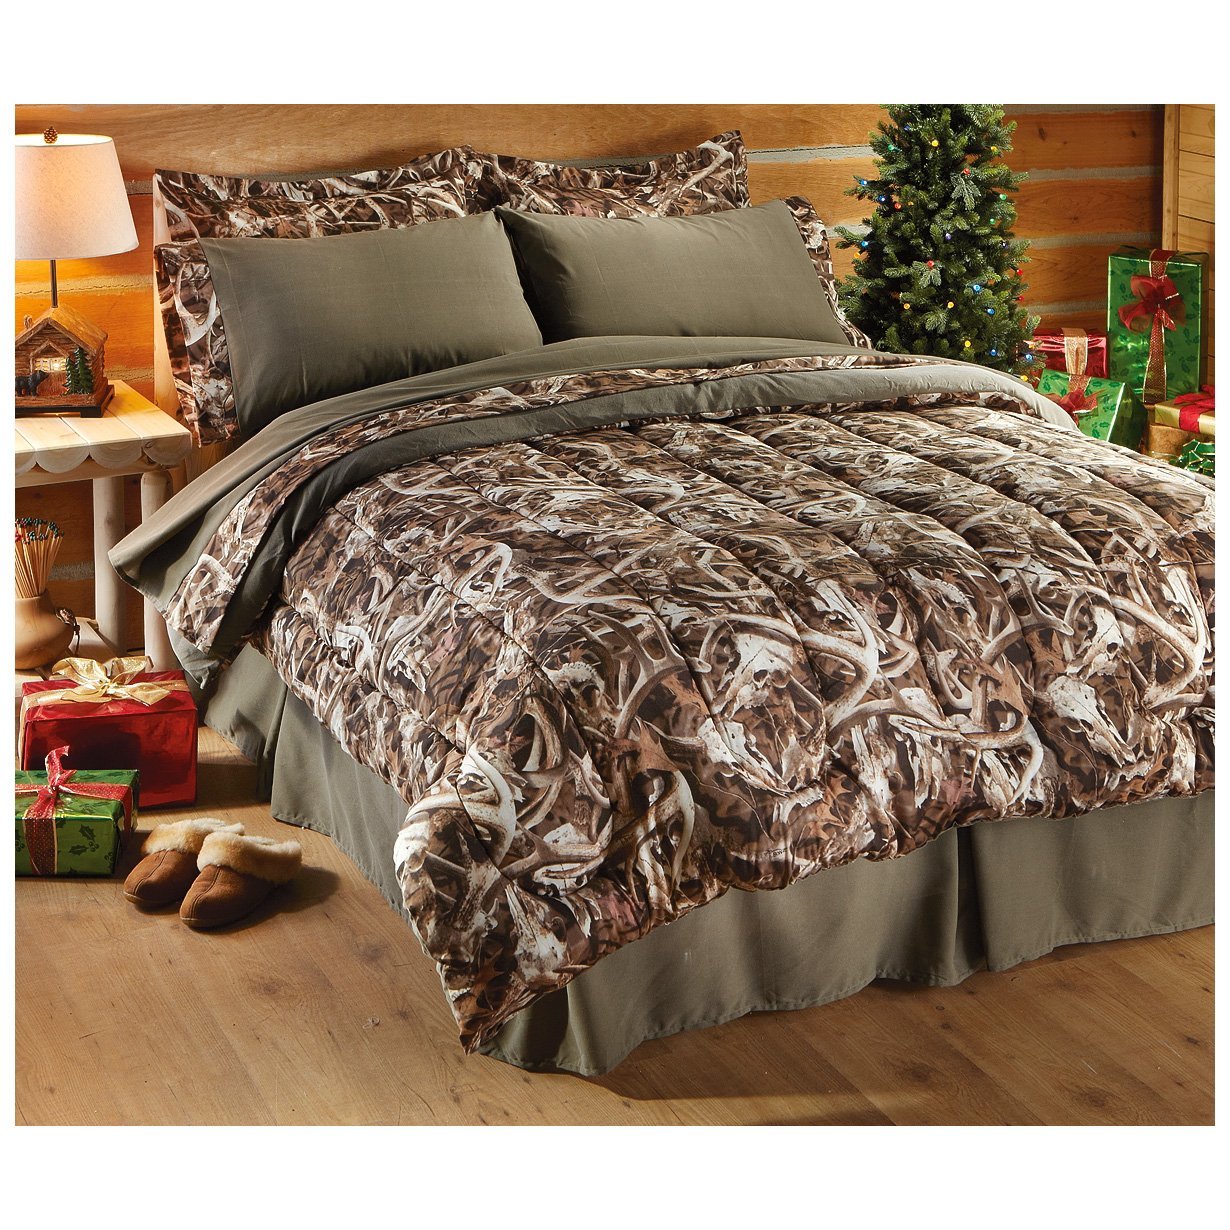 Next Camo Bonz Queen Bedding Set Camouflage Comforter